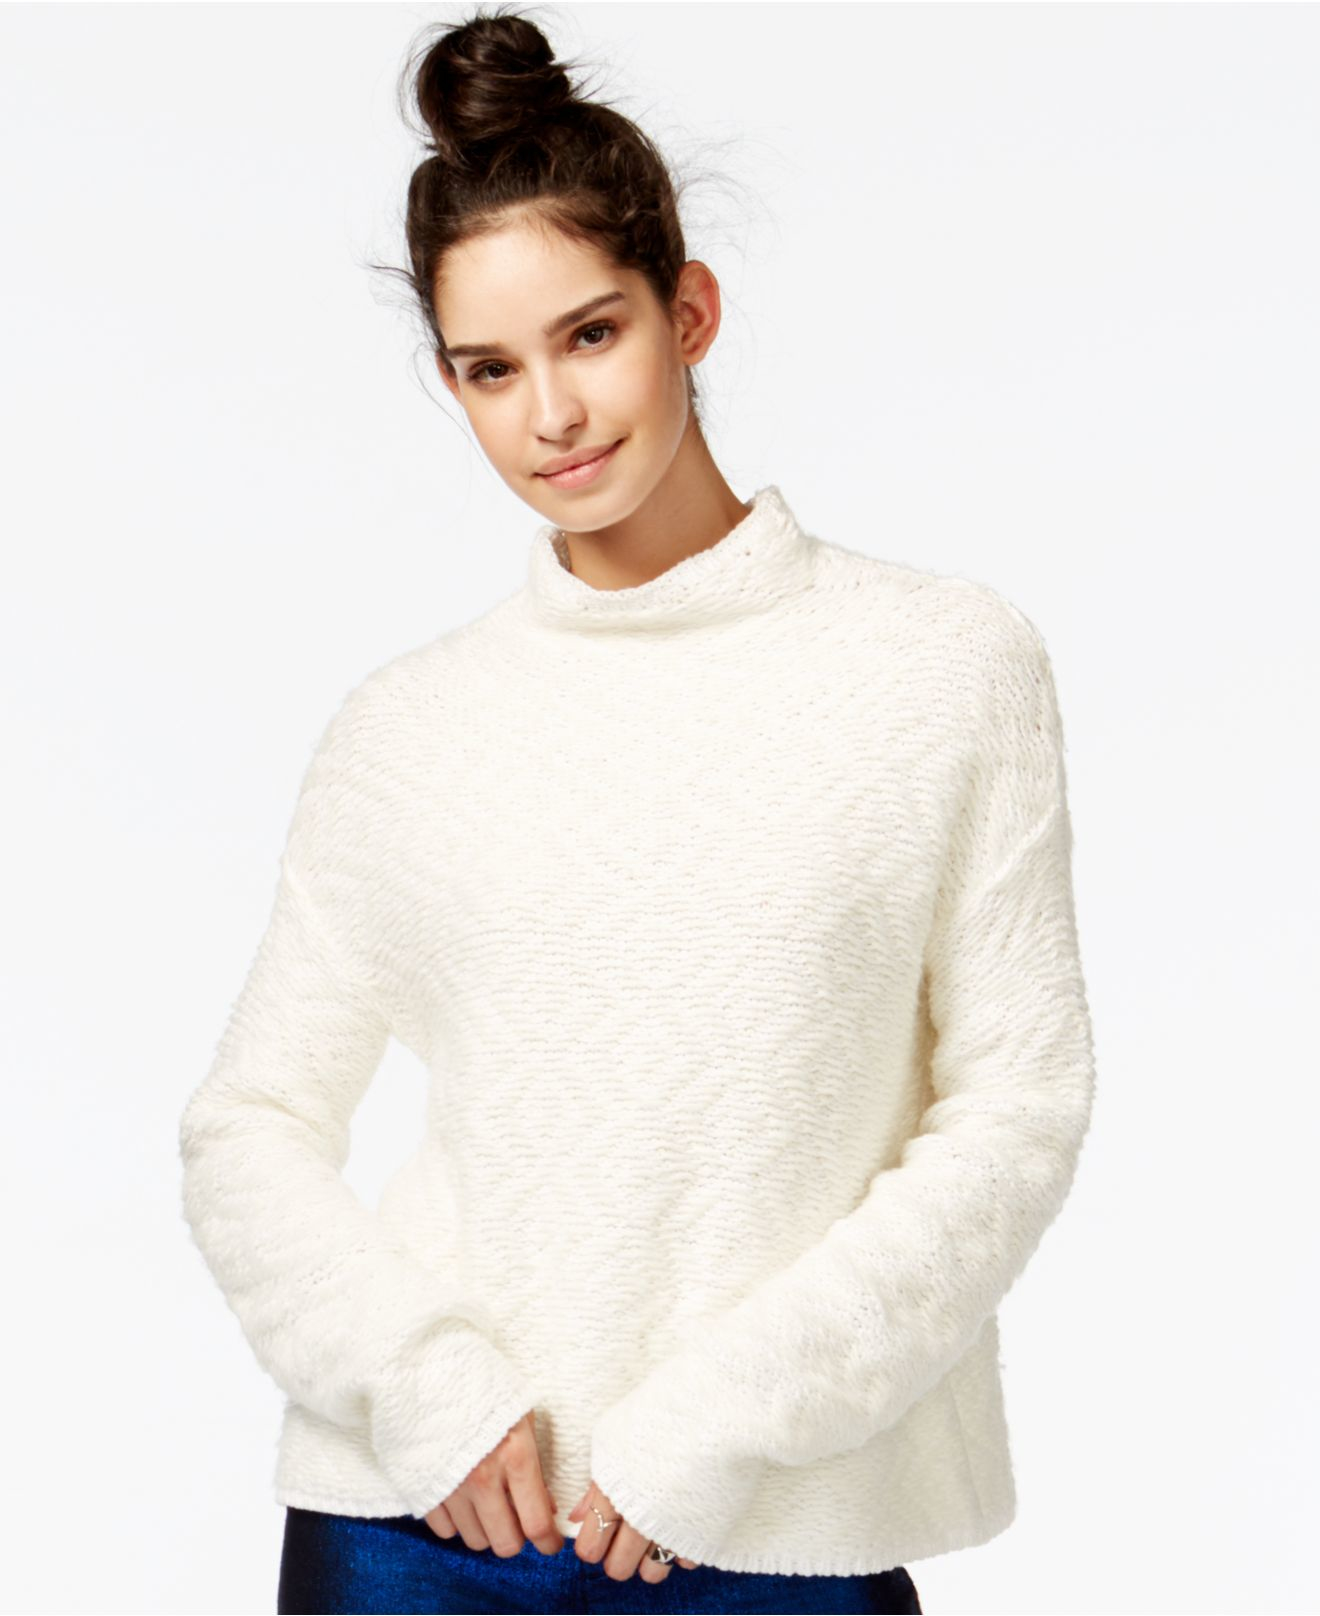 Rachel rachel roy Printed Mock-turtleneck Sweater in Natural | Lyst